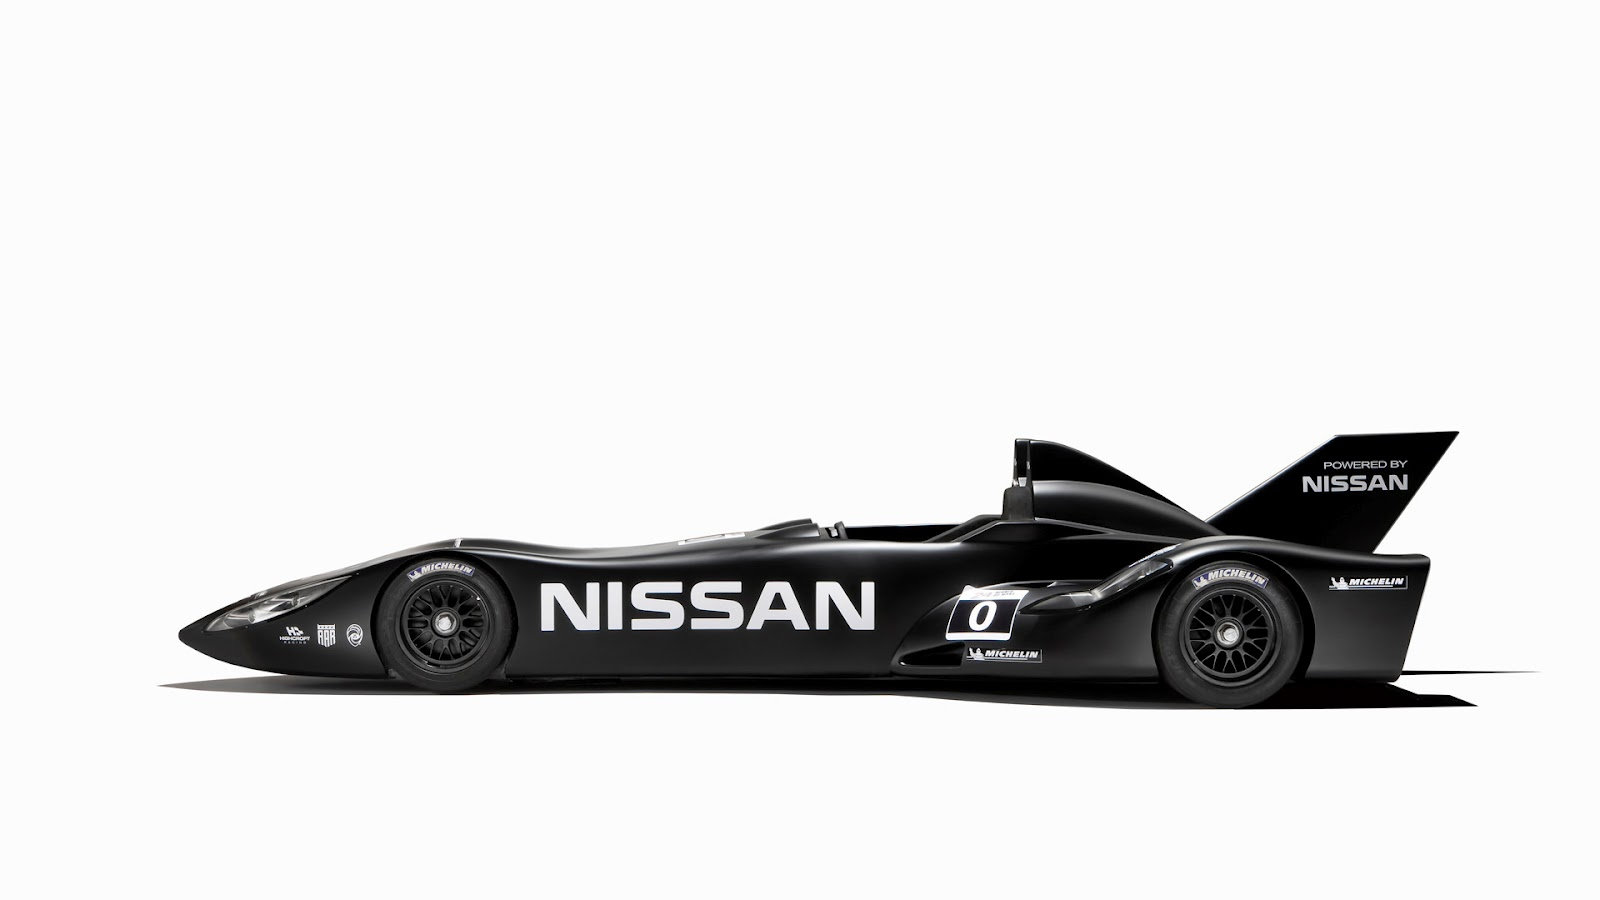 2012 Nissan Delta Wing Left Side (Photo 7 of 12)